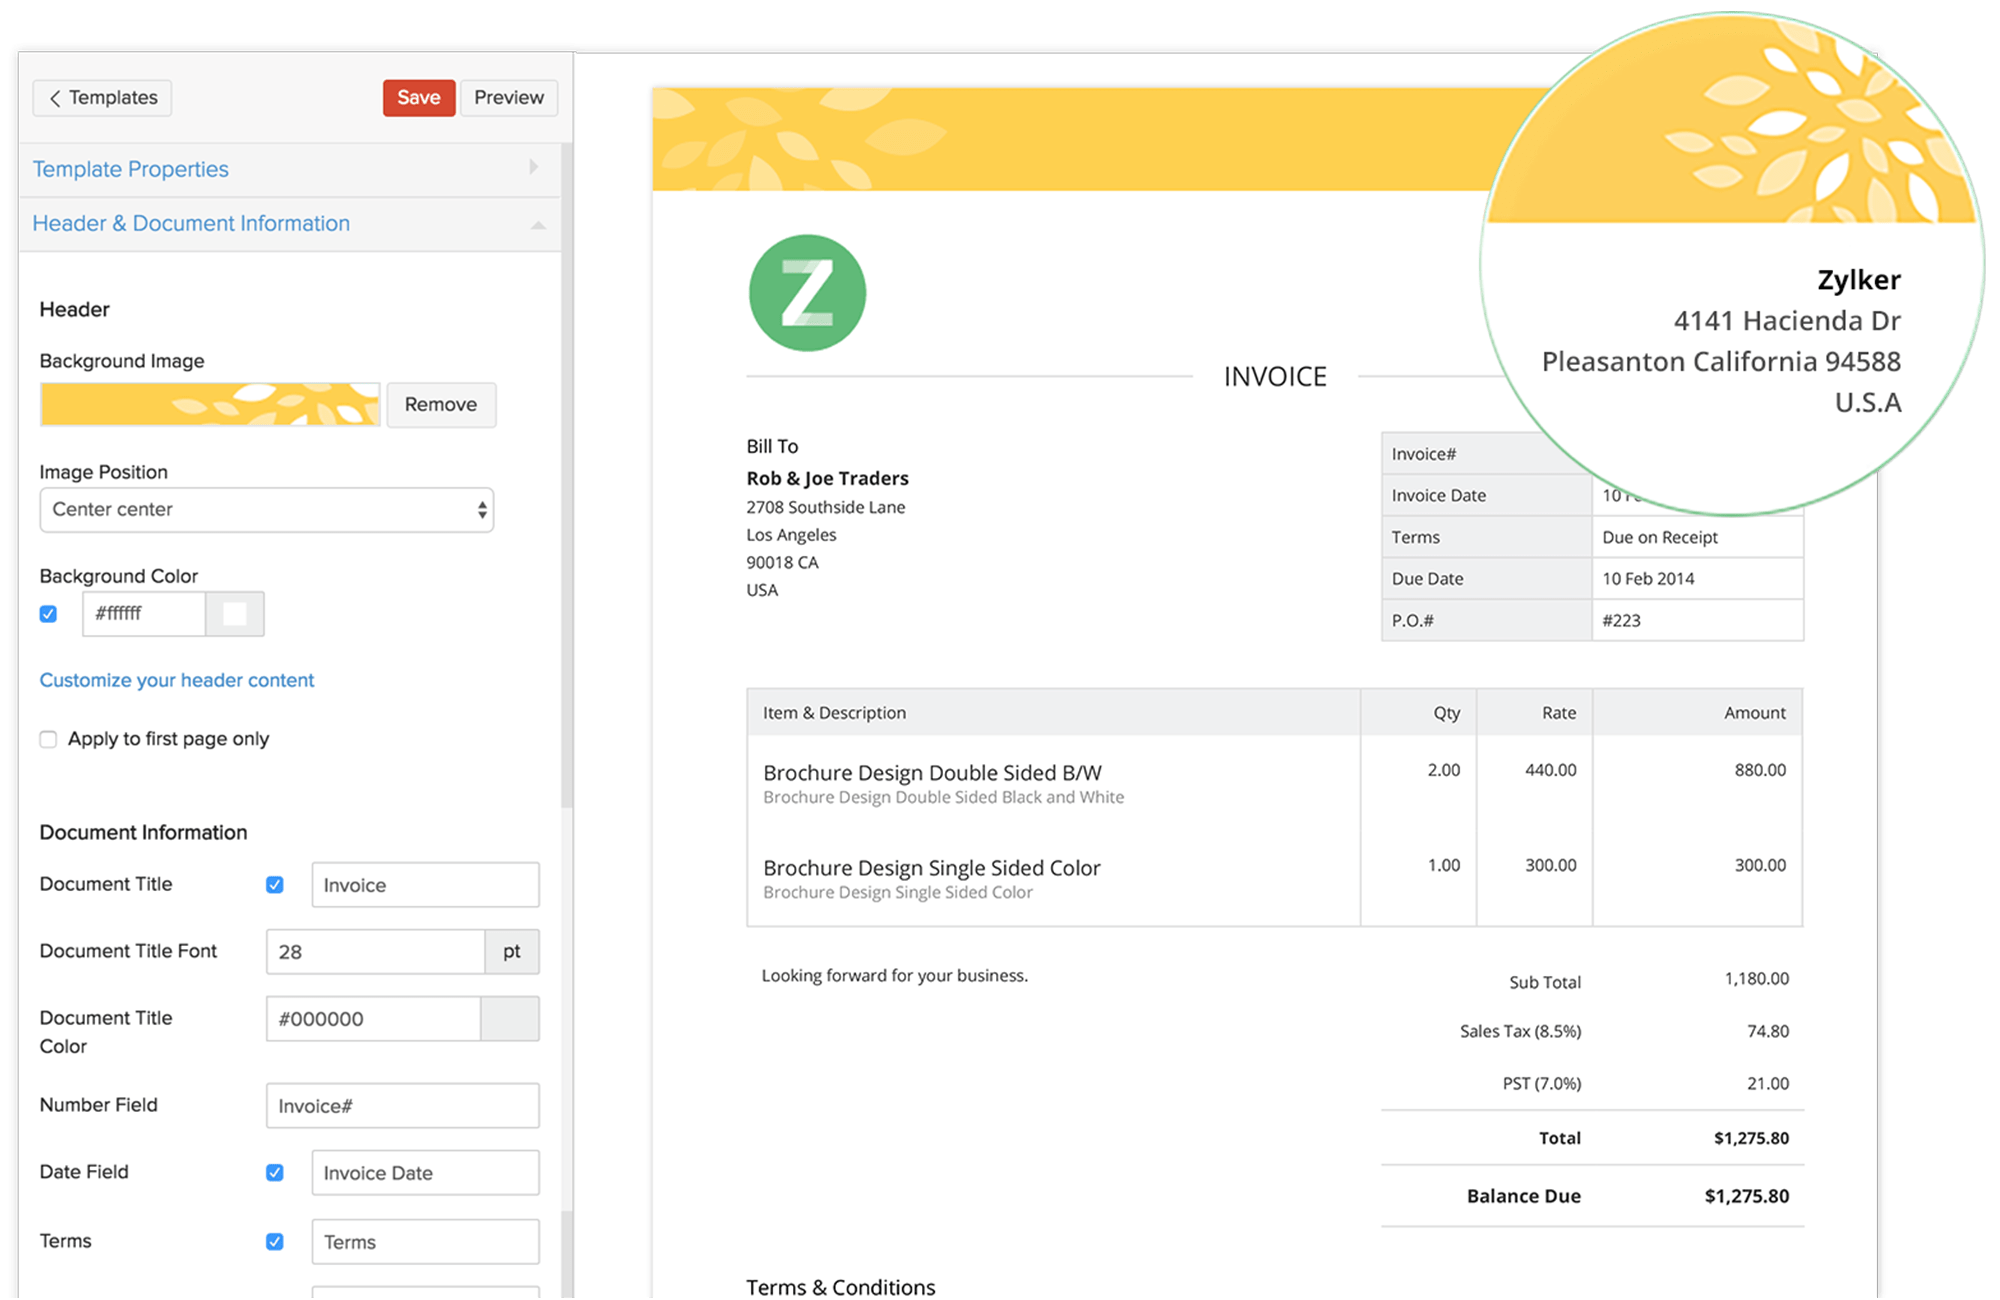 Invoice Templates From Zoho InvoiceCustomise Your Invoices - Invoice templates